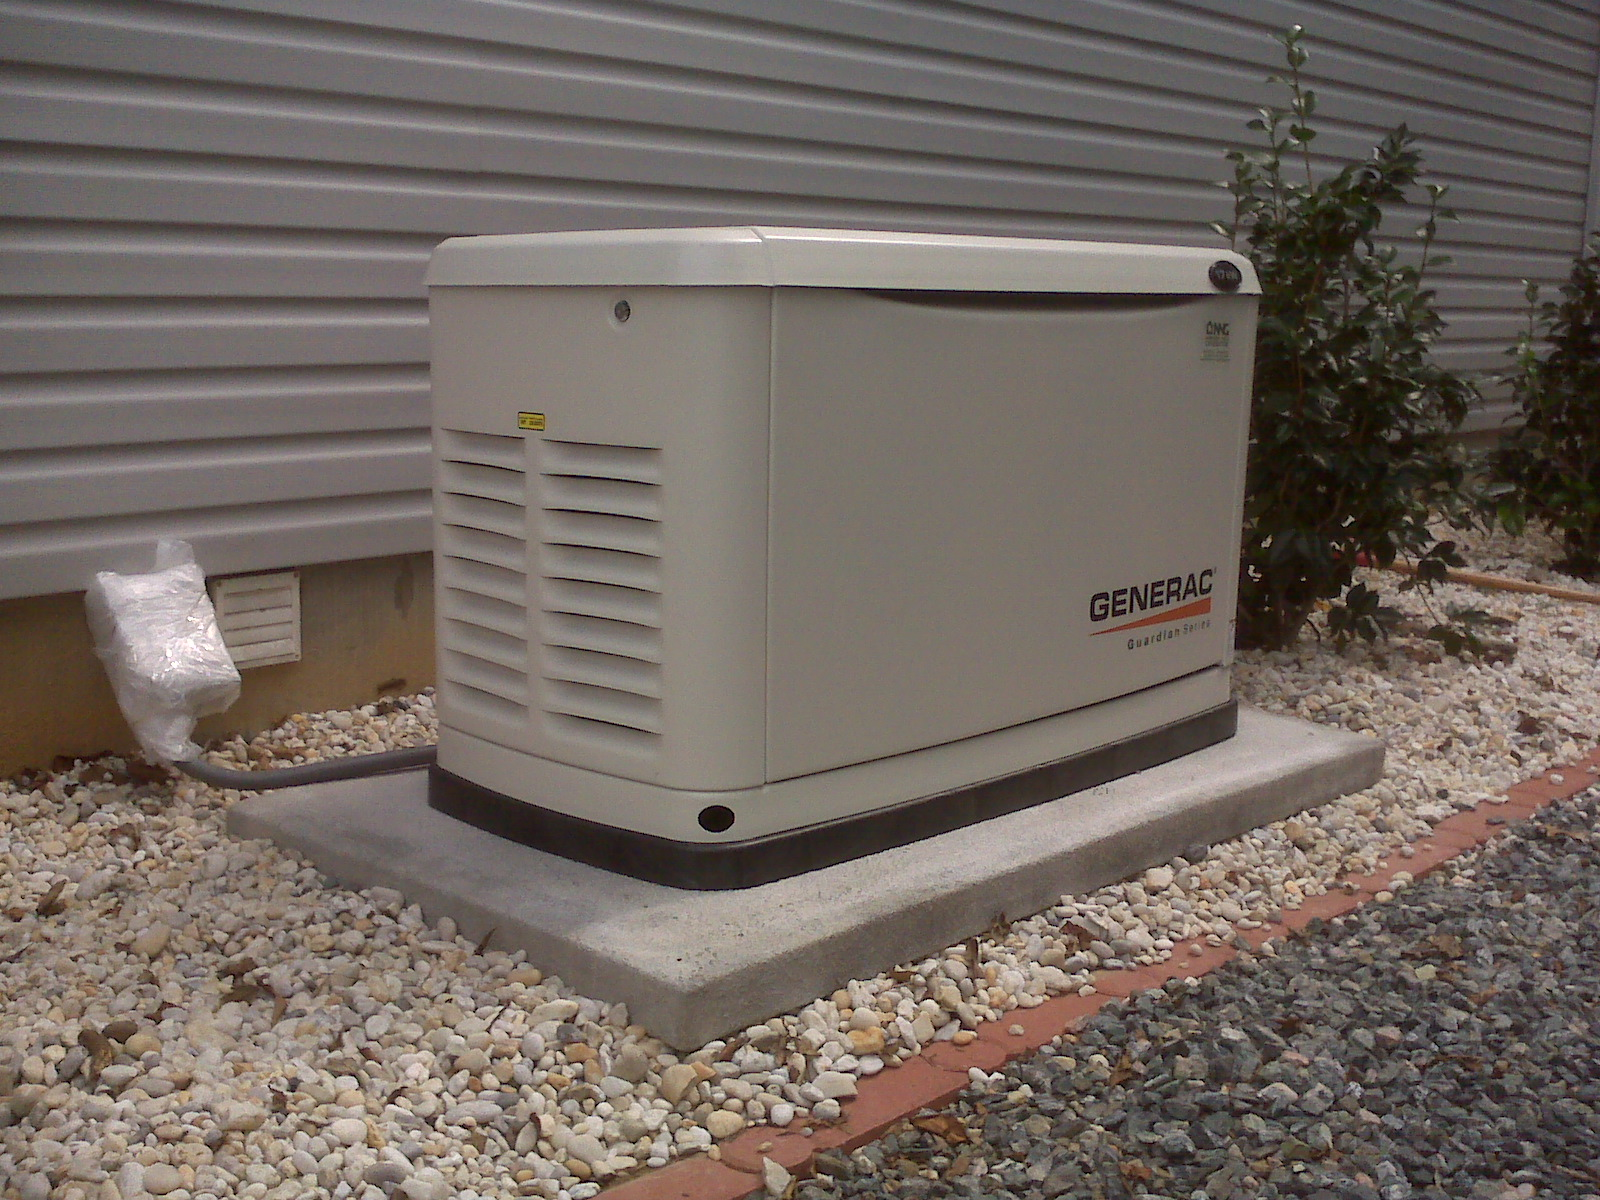 Generac 30 kw sel generator for residential home installed and